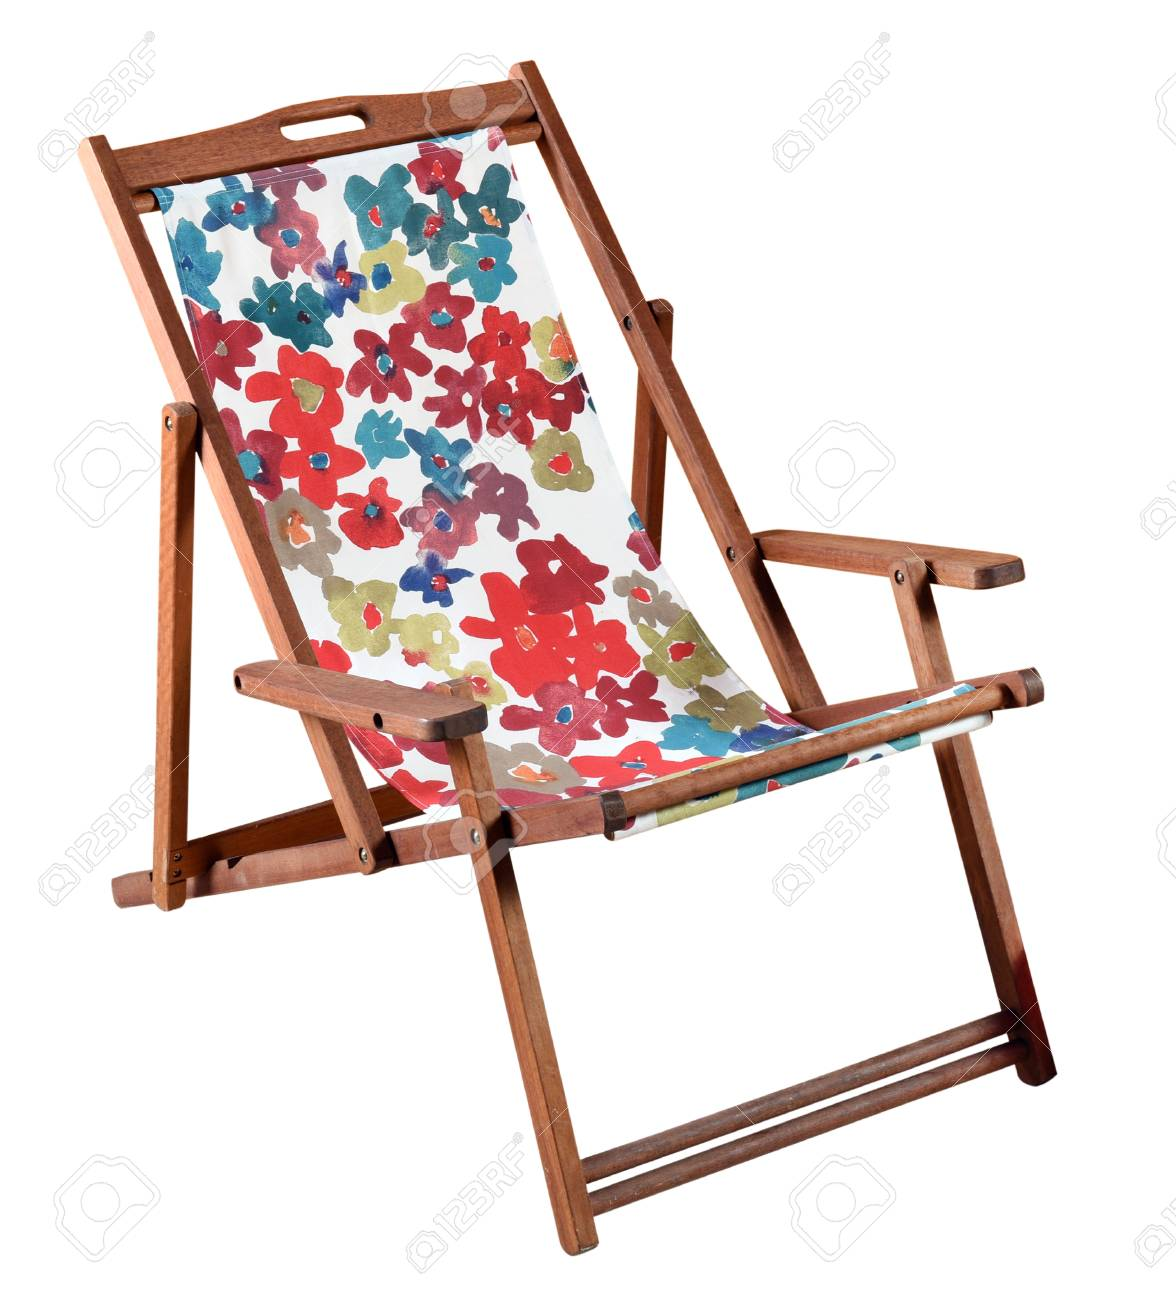 Phenomenal Colorful Folding Wooden Beach With A Bold Patterned Canvas Seat Ncnpc Chair Design For Home Ncnpcorg